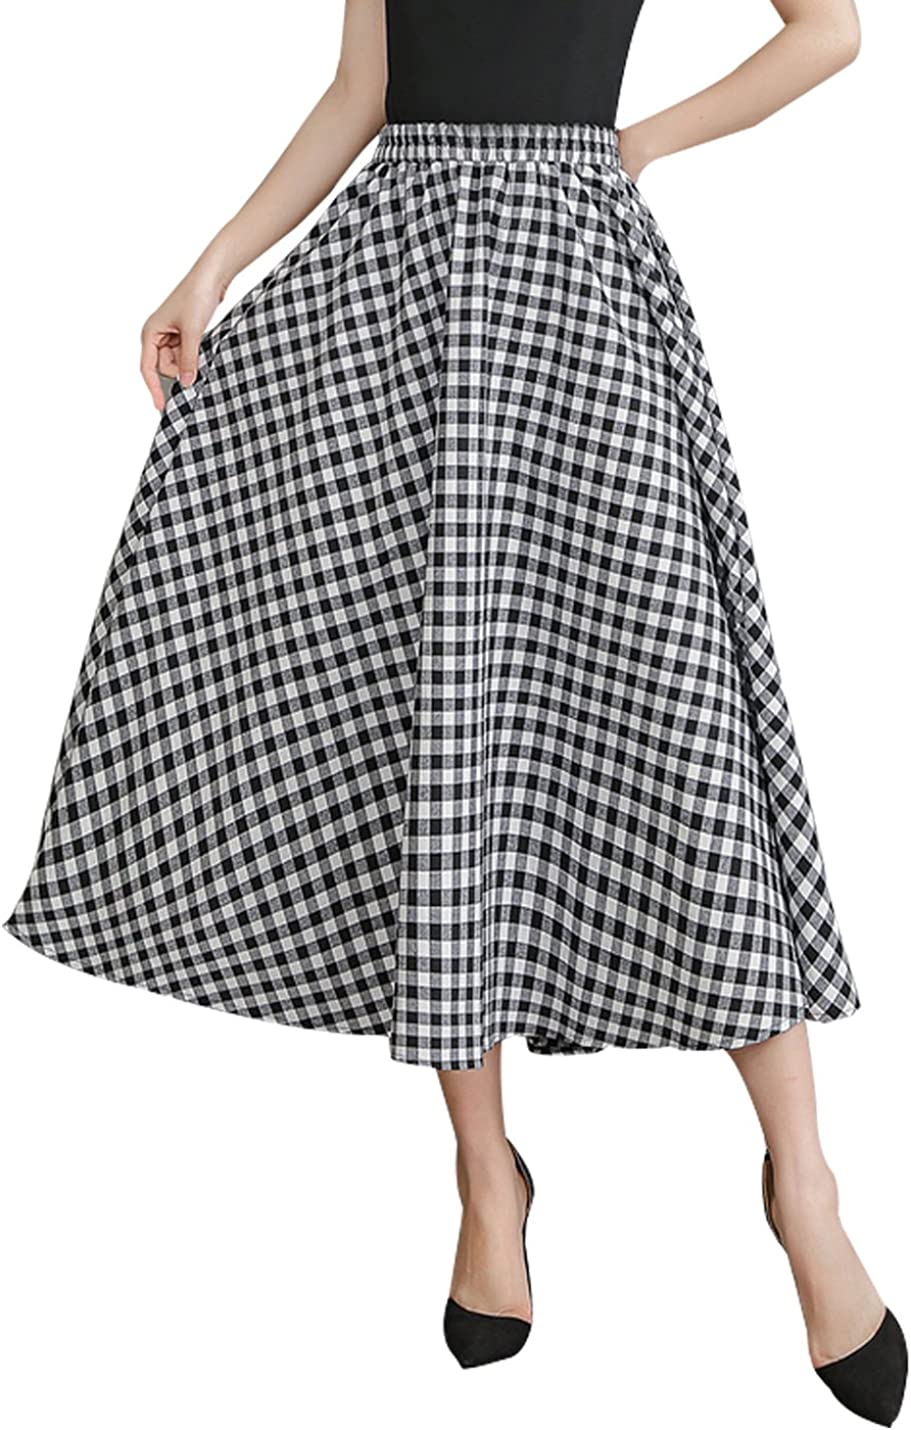 Gihuo Women's Casual Elastic Waist Cotton Linen A Line Swing Plaid Skirt Ankle Length